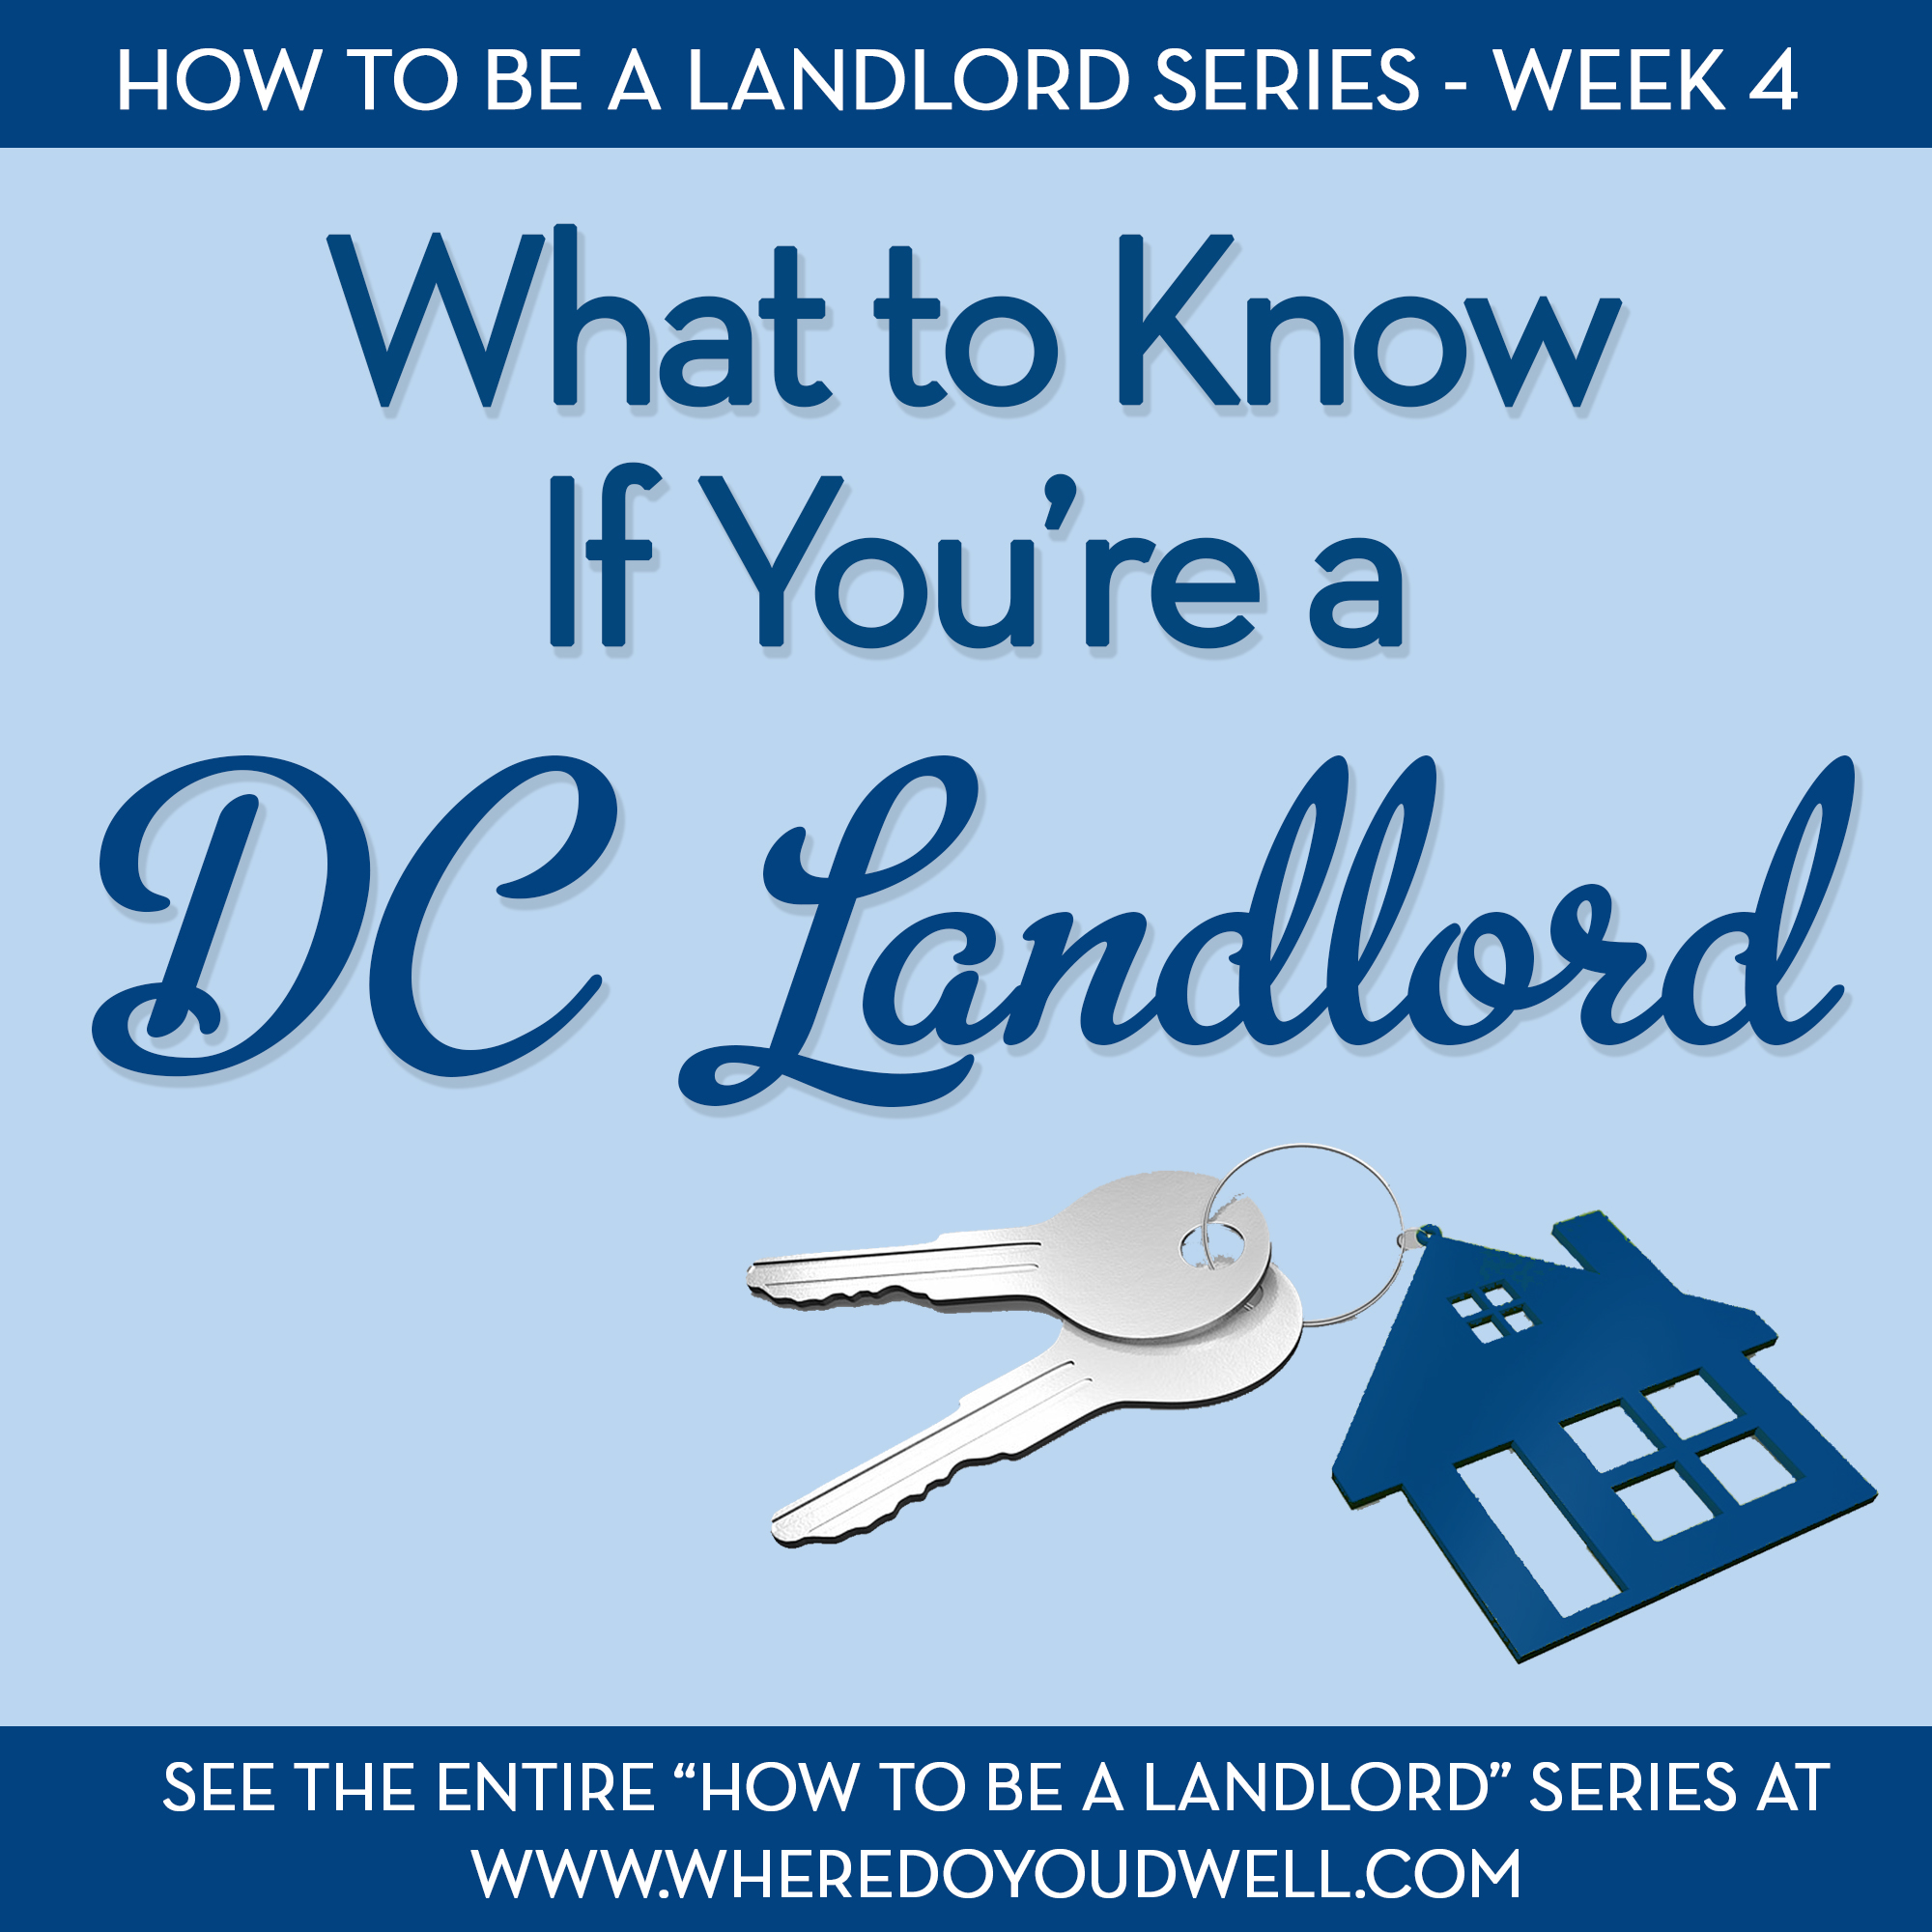 The District has its own set laws and regulations for becoming a landlord that other jurisdictions don't.